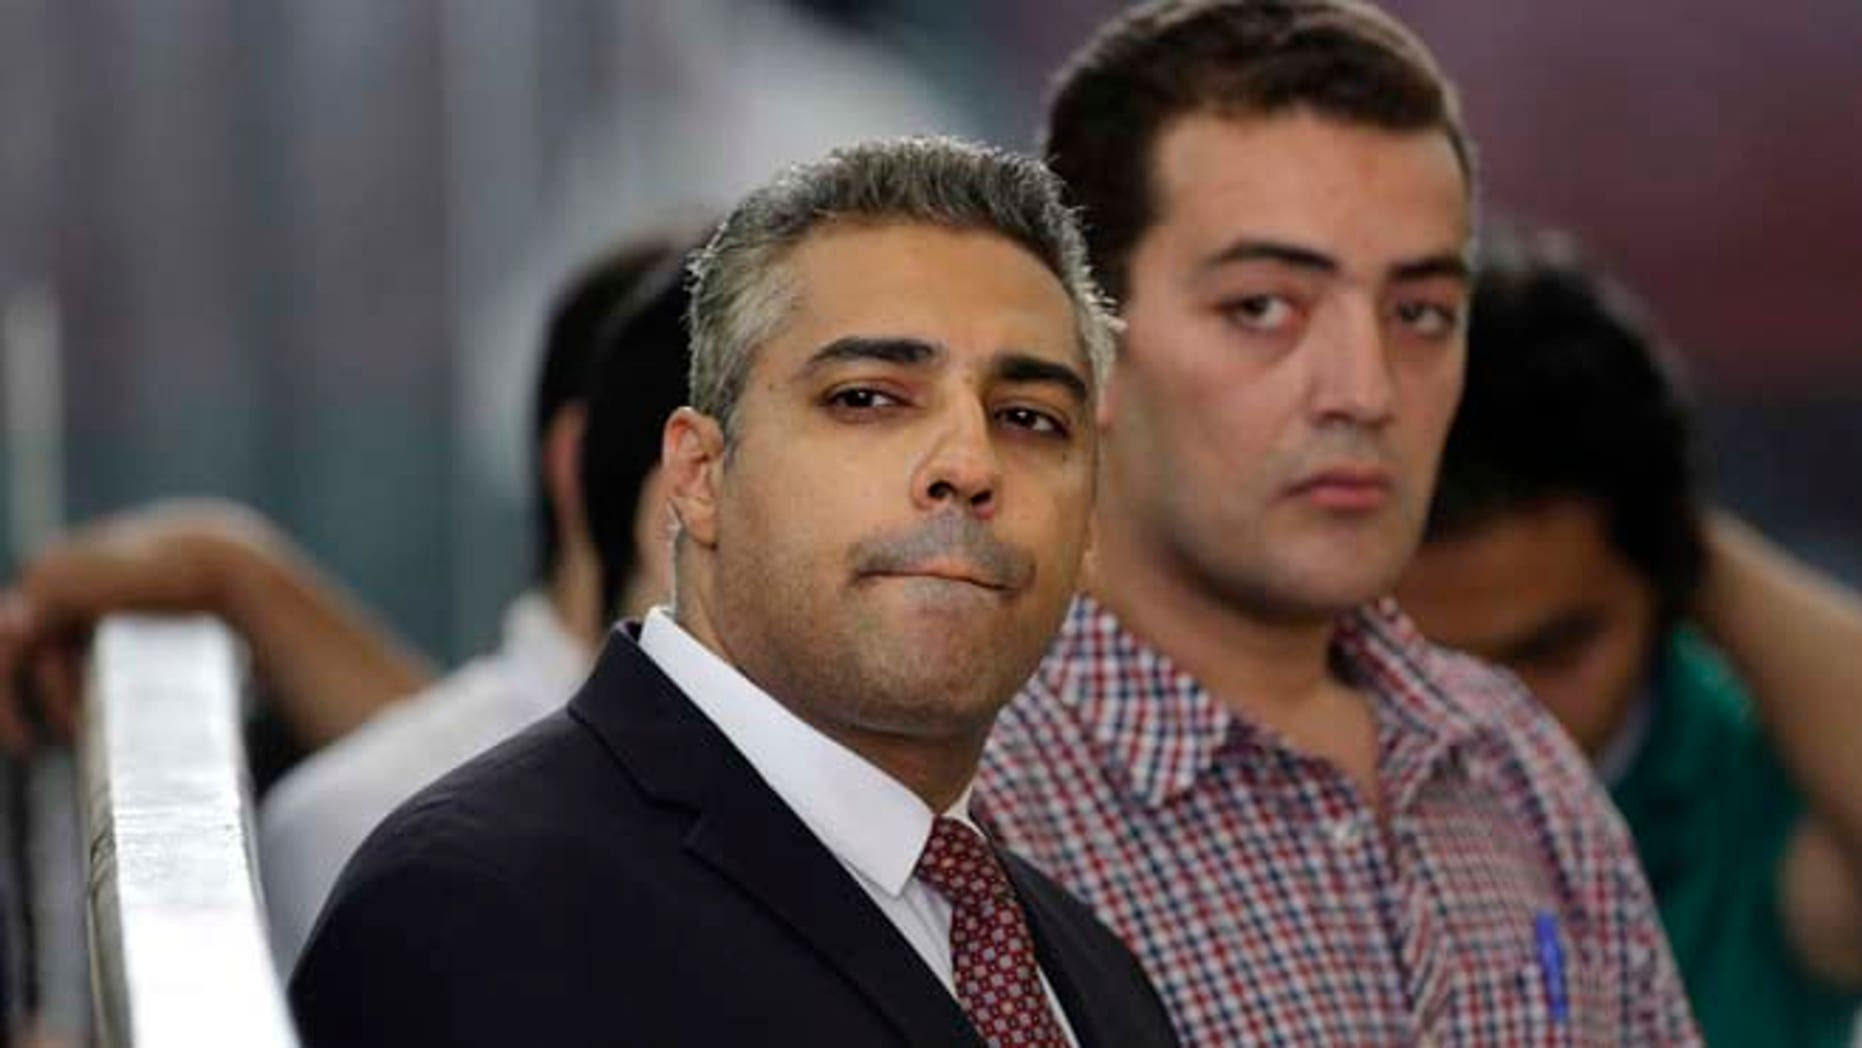 June 4, 2015: Canadian Al-Jazeera English journalist Mohammed Fahmy, left, and his Egyptian colleague Baher Mohammed listen in a courtroom in Tora prison in Cairo, Egypt.